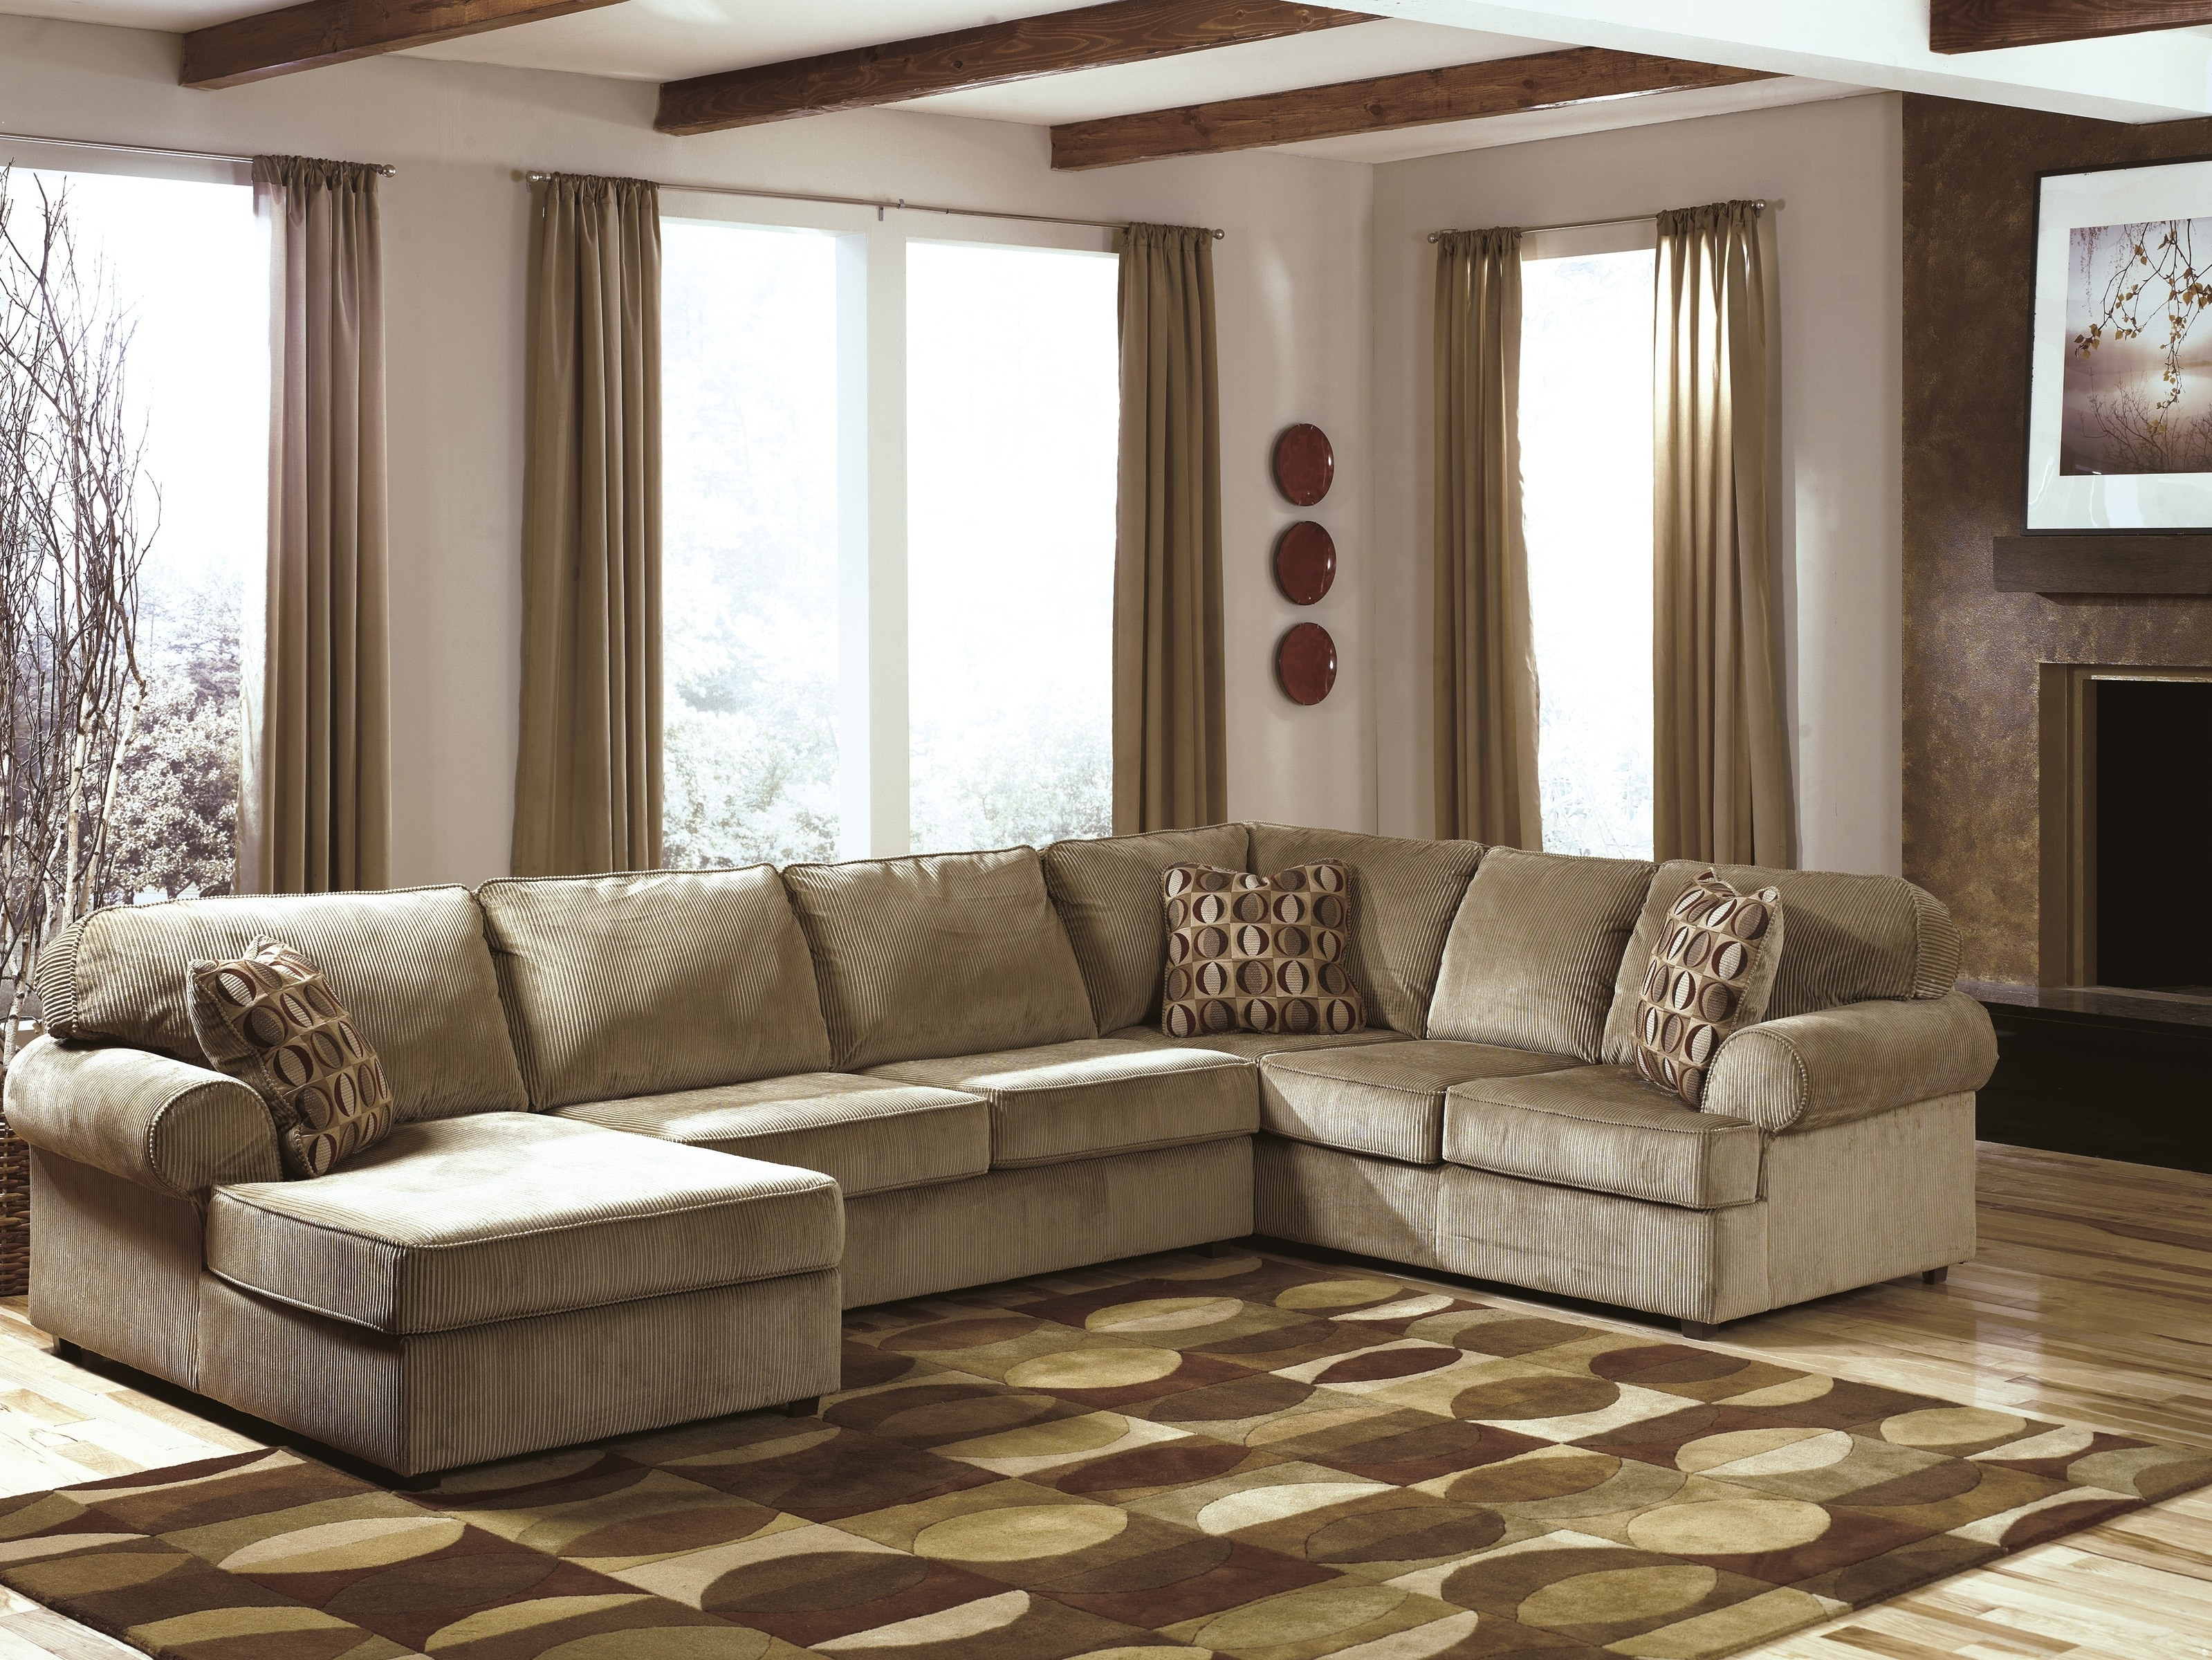 Quality Sectional Sofas | Ezhandui intended for Quality Sectional Sofas